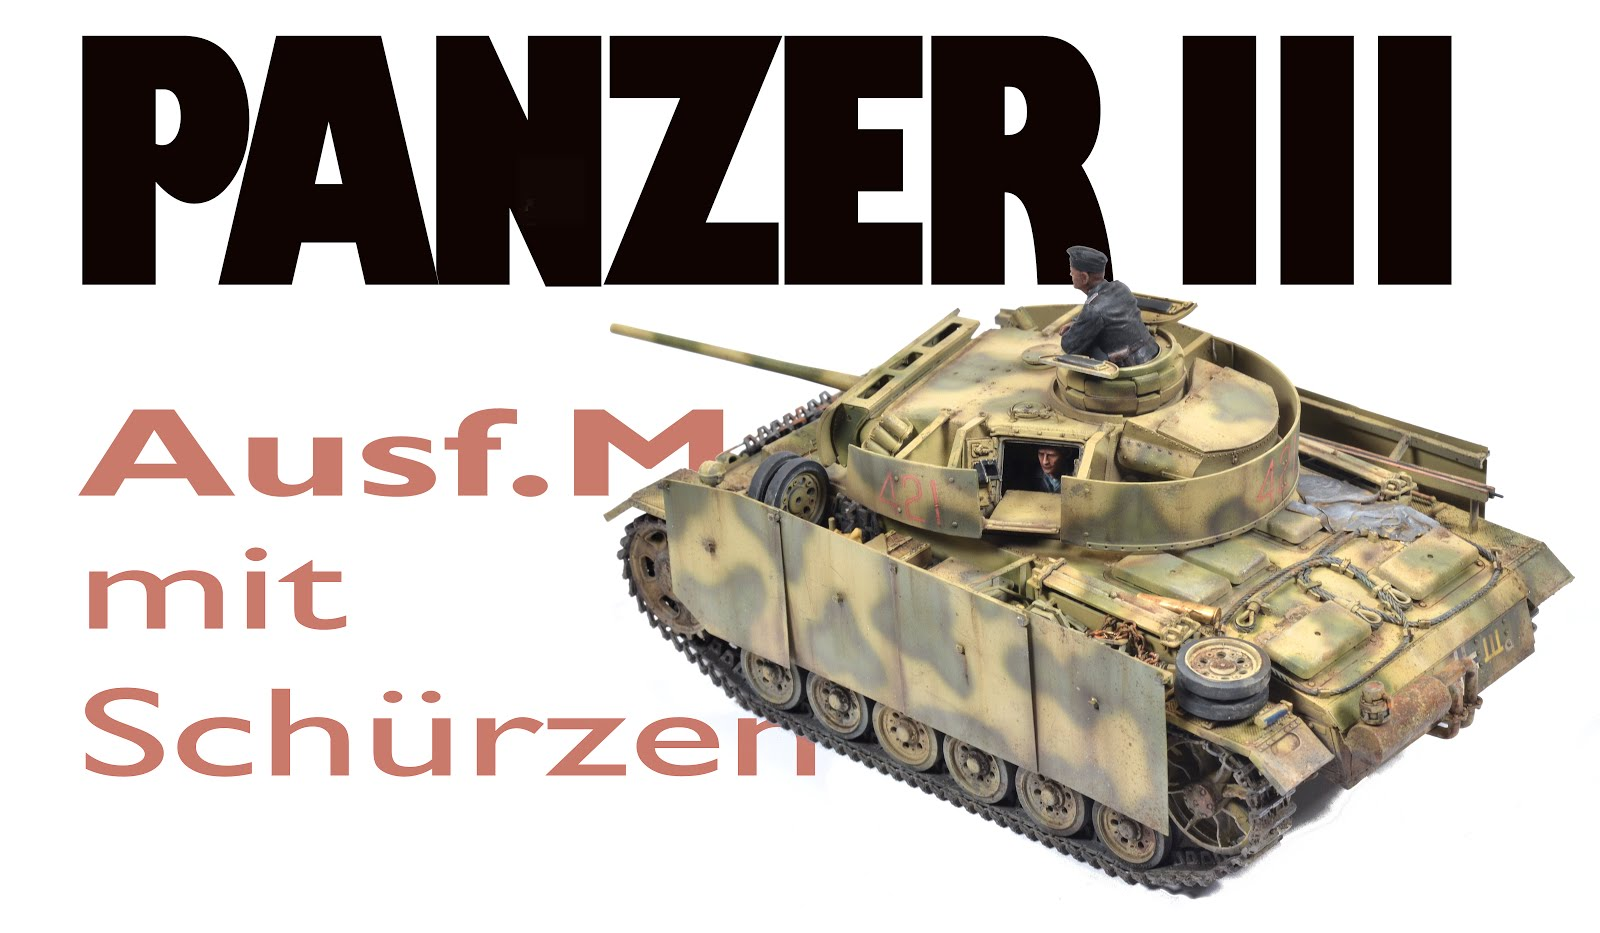 Build Guide Pt II: Painting and Weathering Takom's Panzer III Ausf.M mit Schürzen in 35th scale